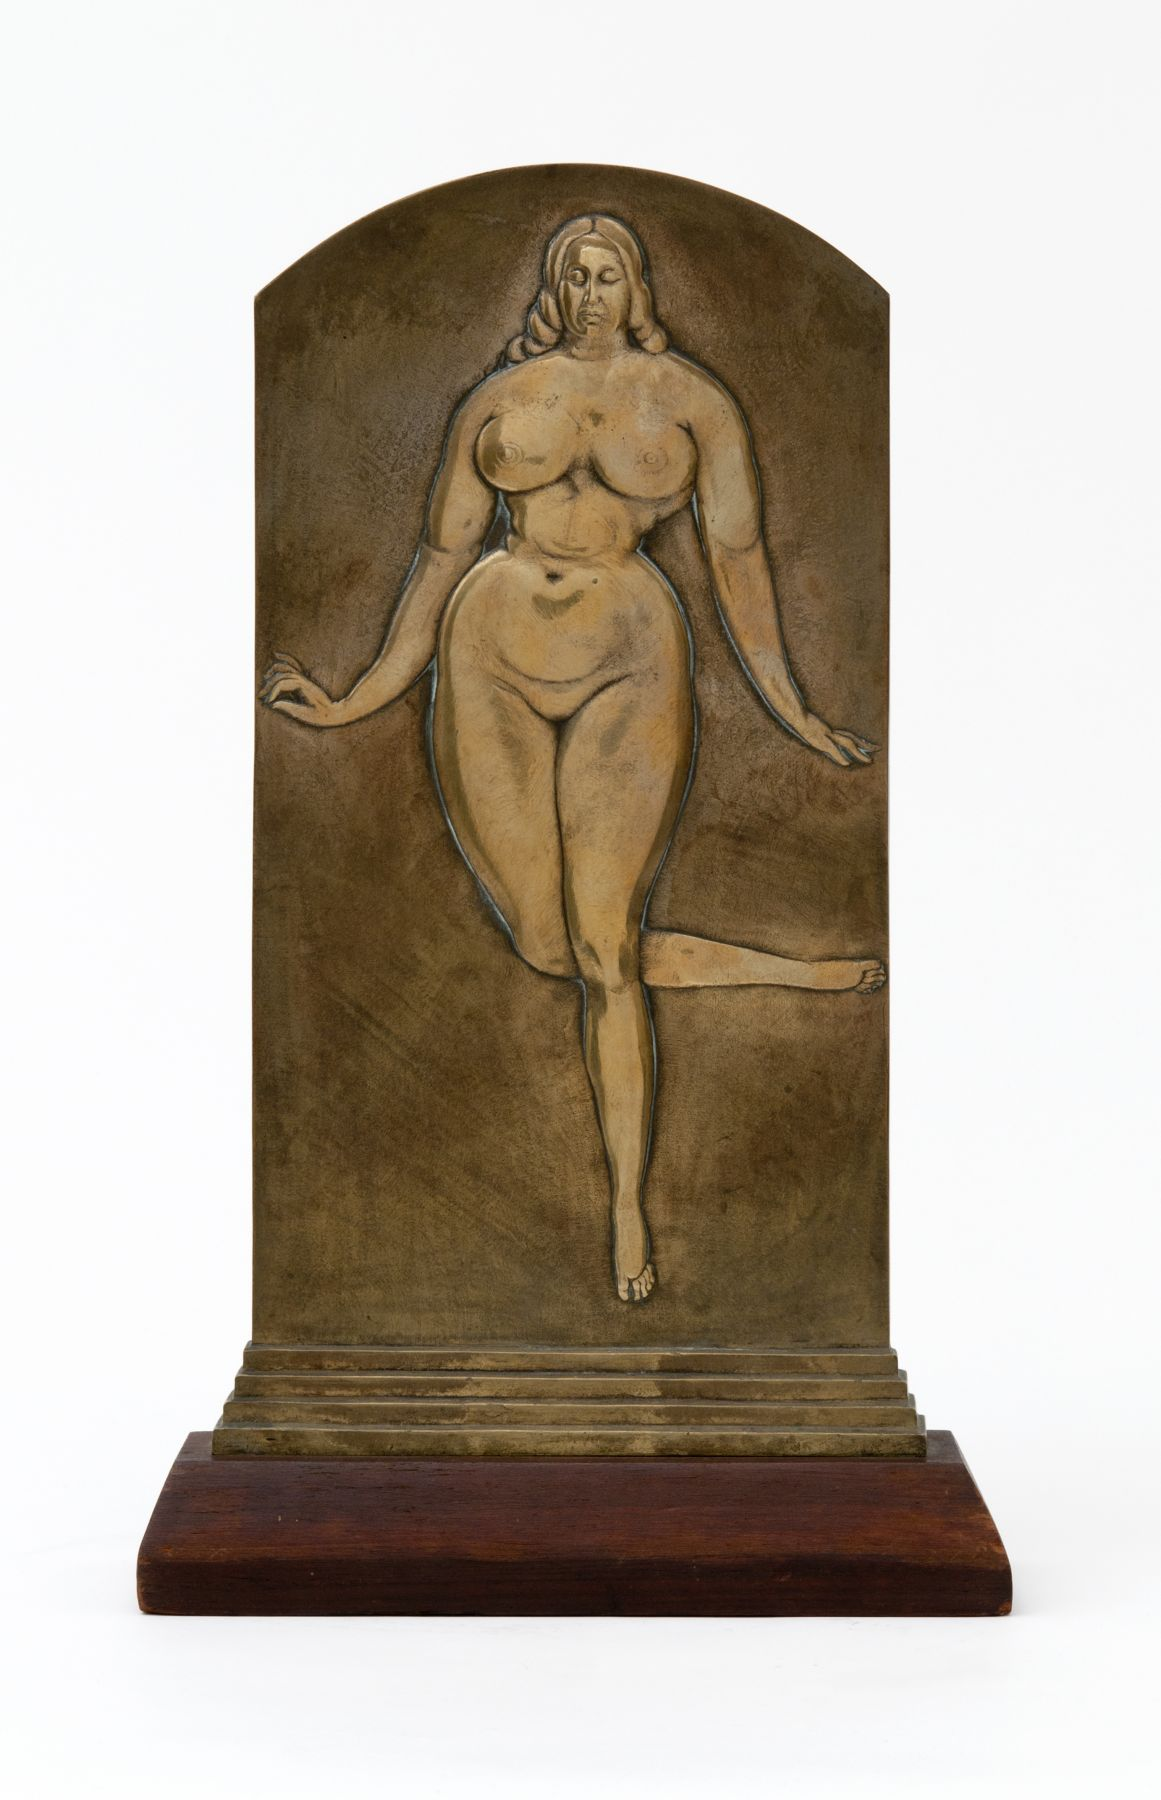 Gaston Lachaise, Woman, c. 1911–18, bronze relief, 14 1/2 h x 7 w x 1 1/2 d inches, unique cast